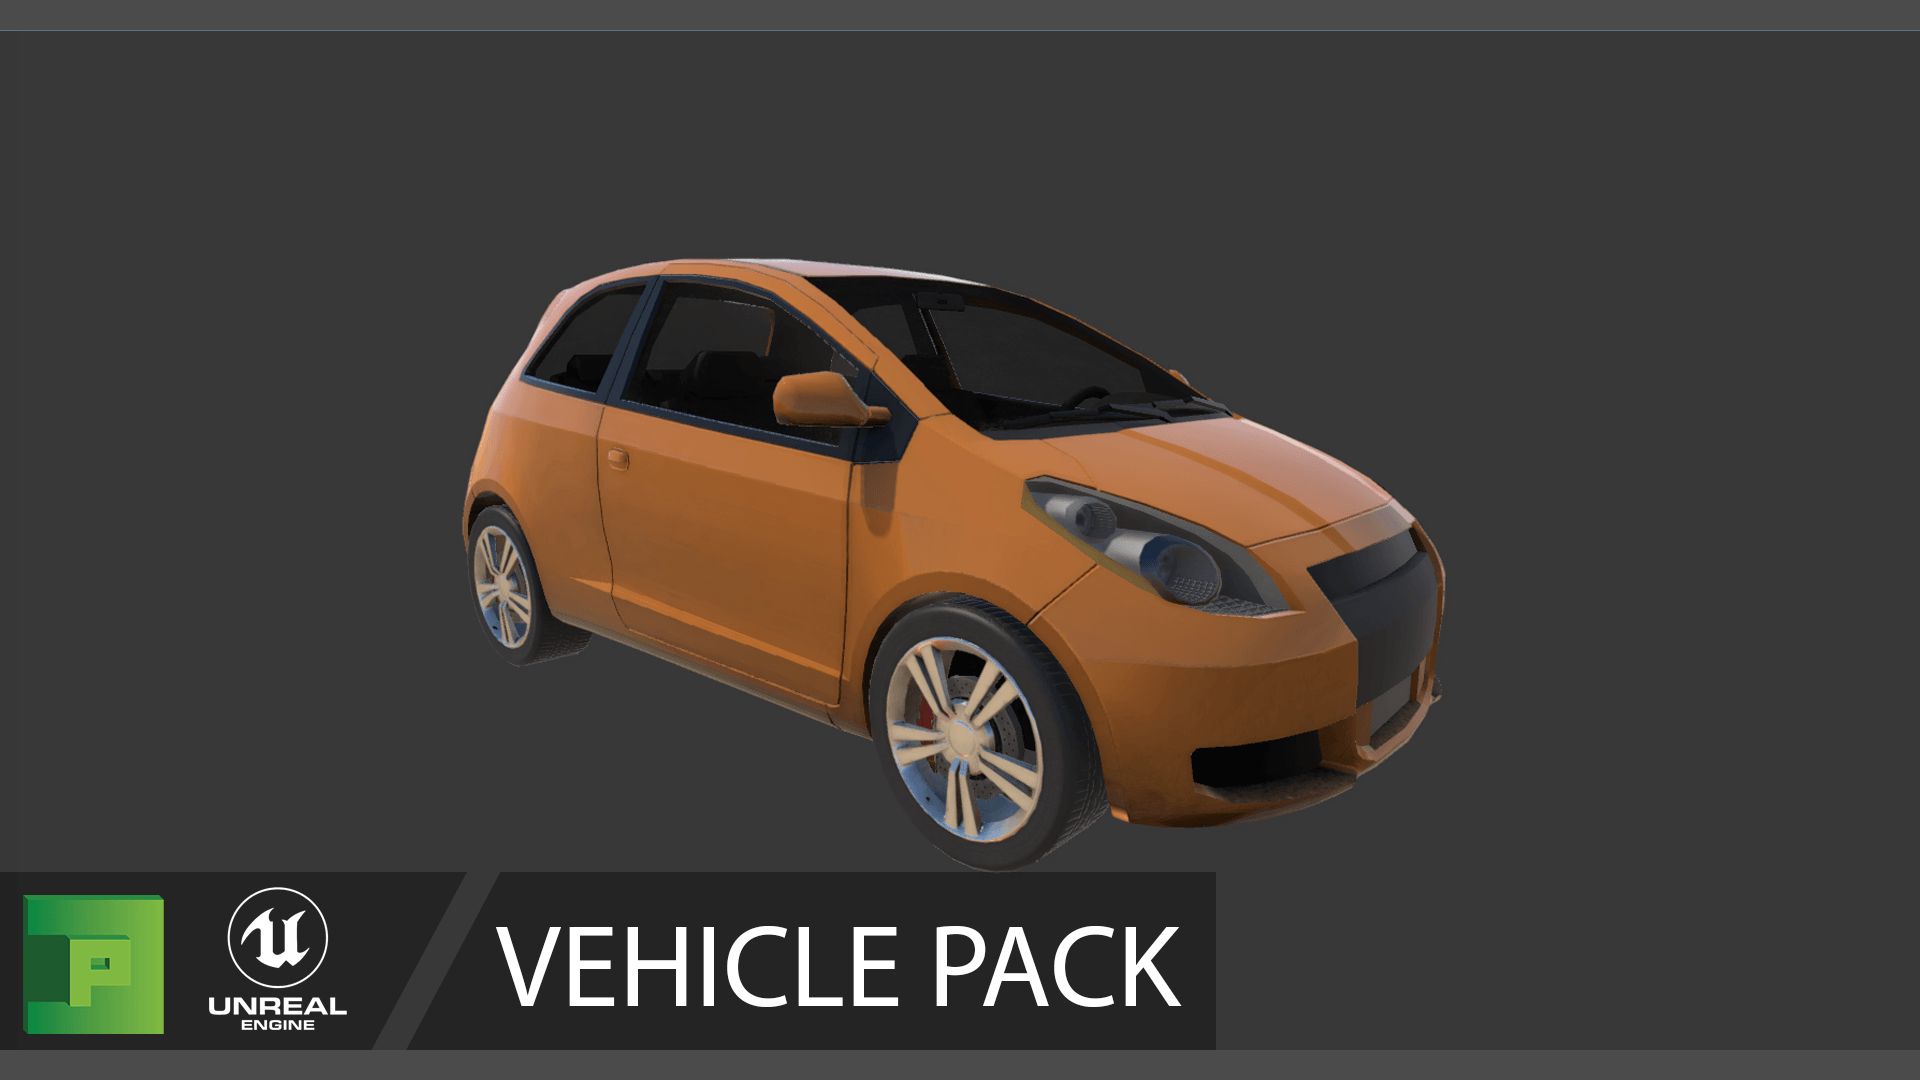 VehiclePack_09